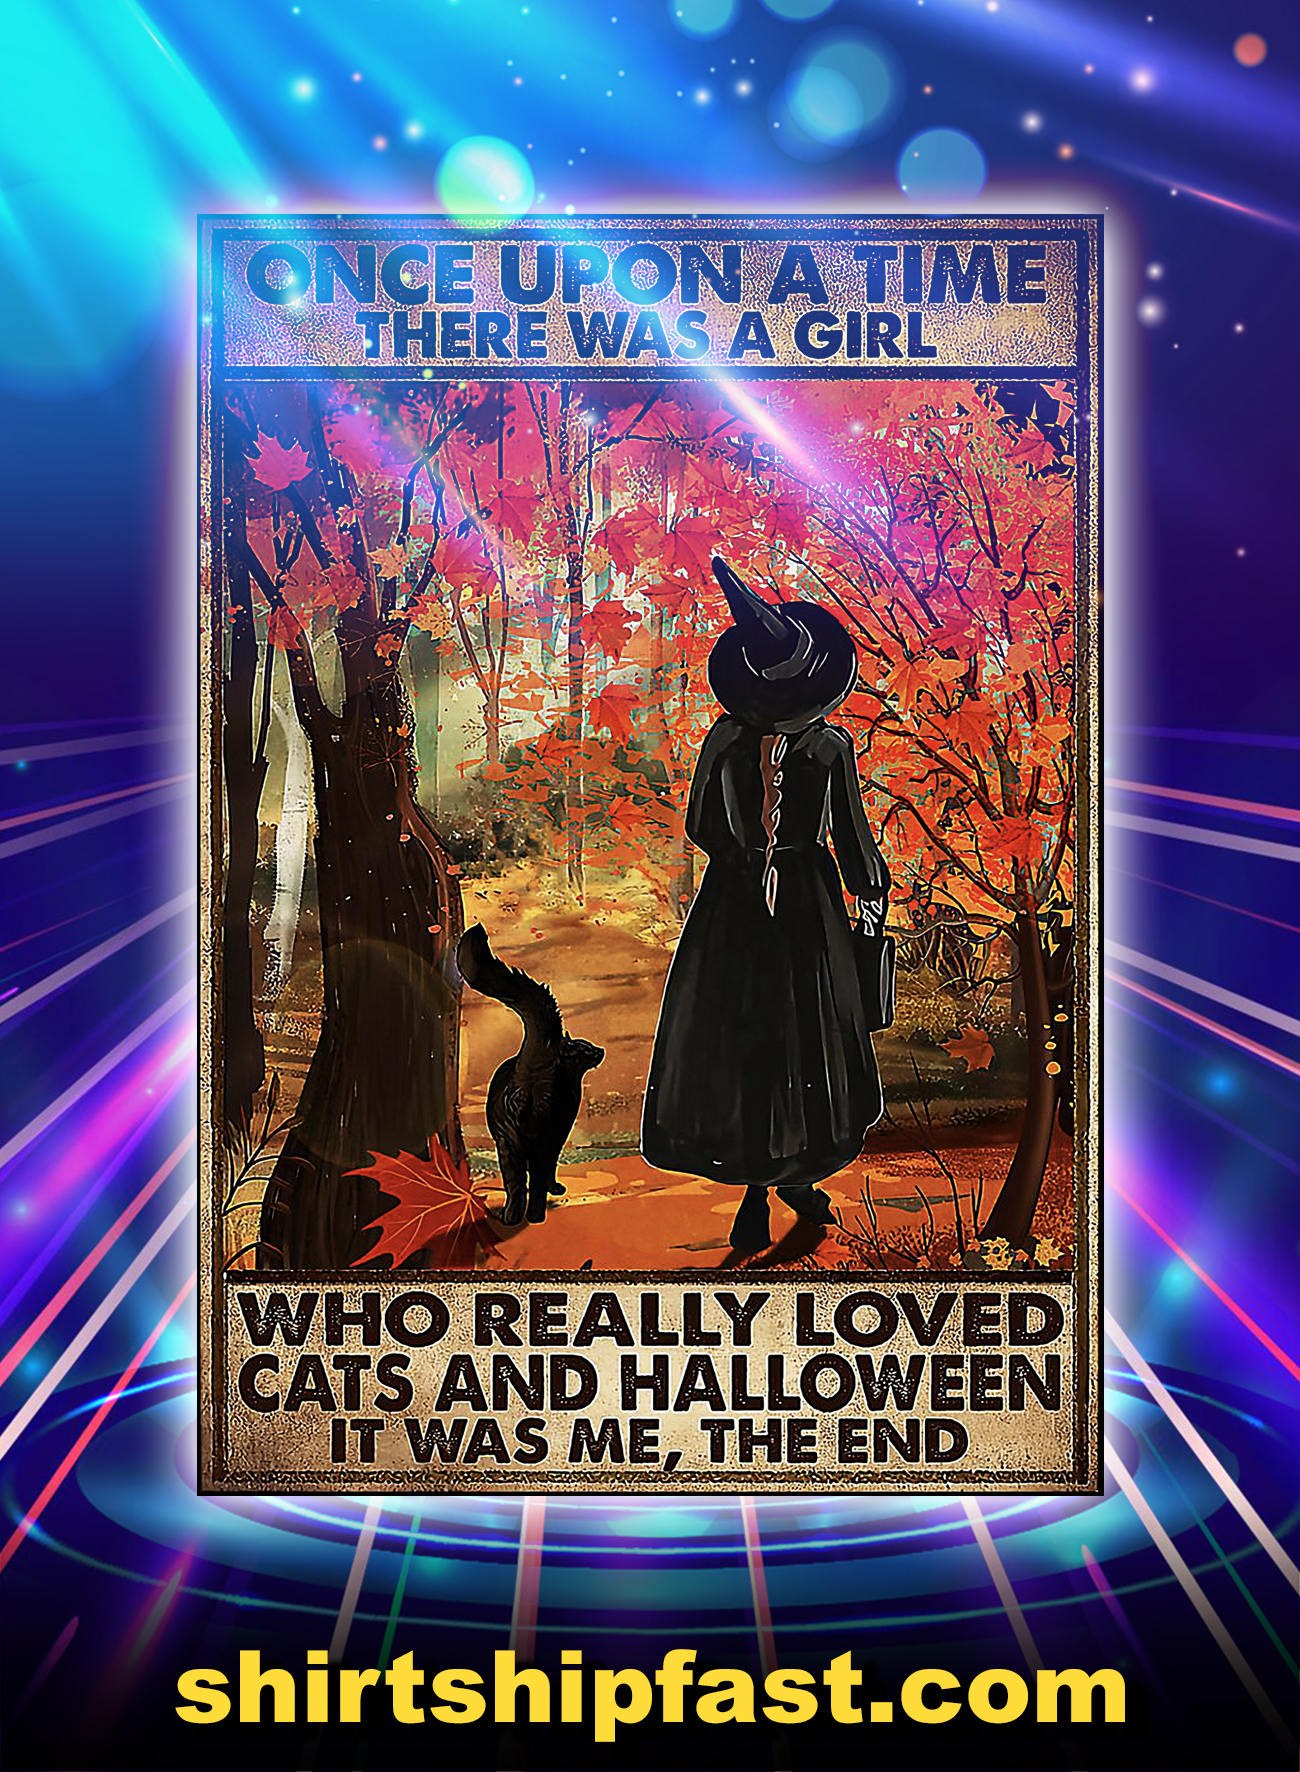 Once upon a time there was a girl who really loved cats and halloween poster - A4